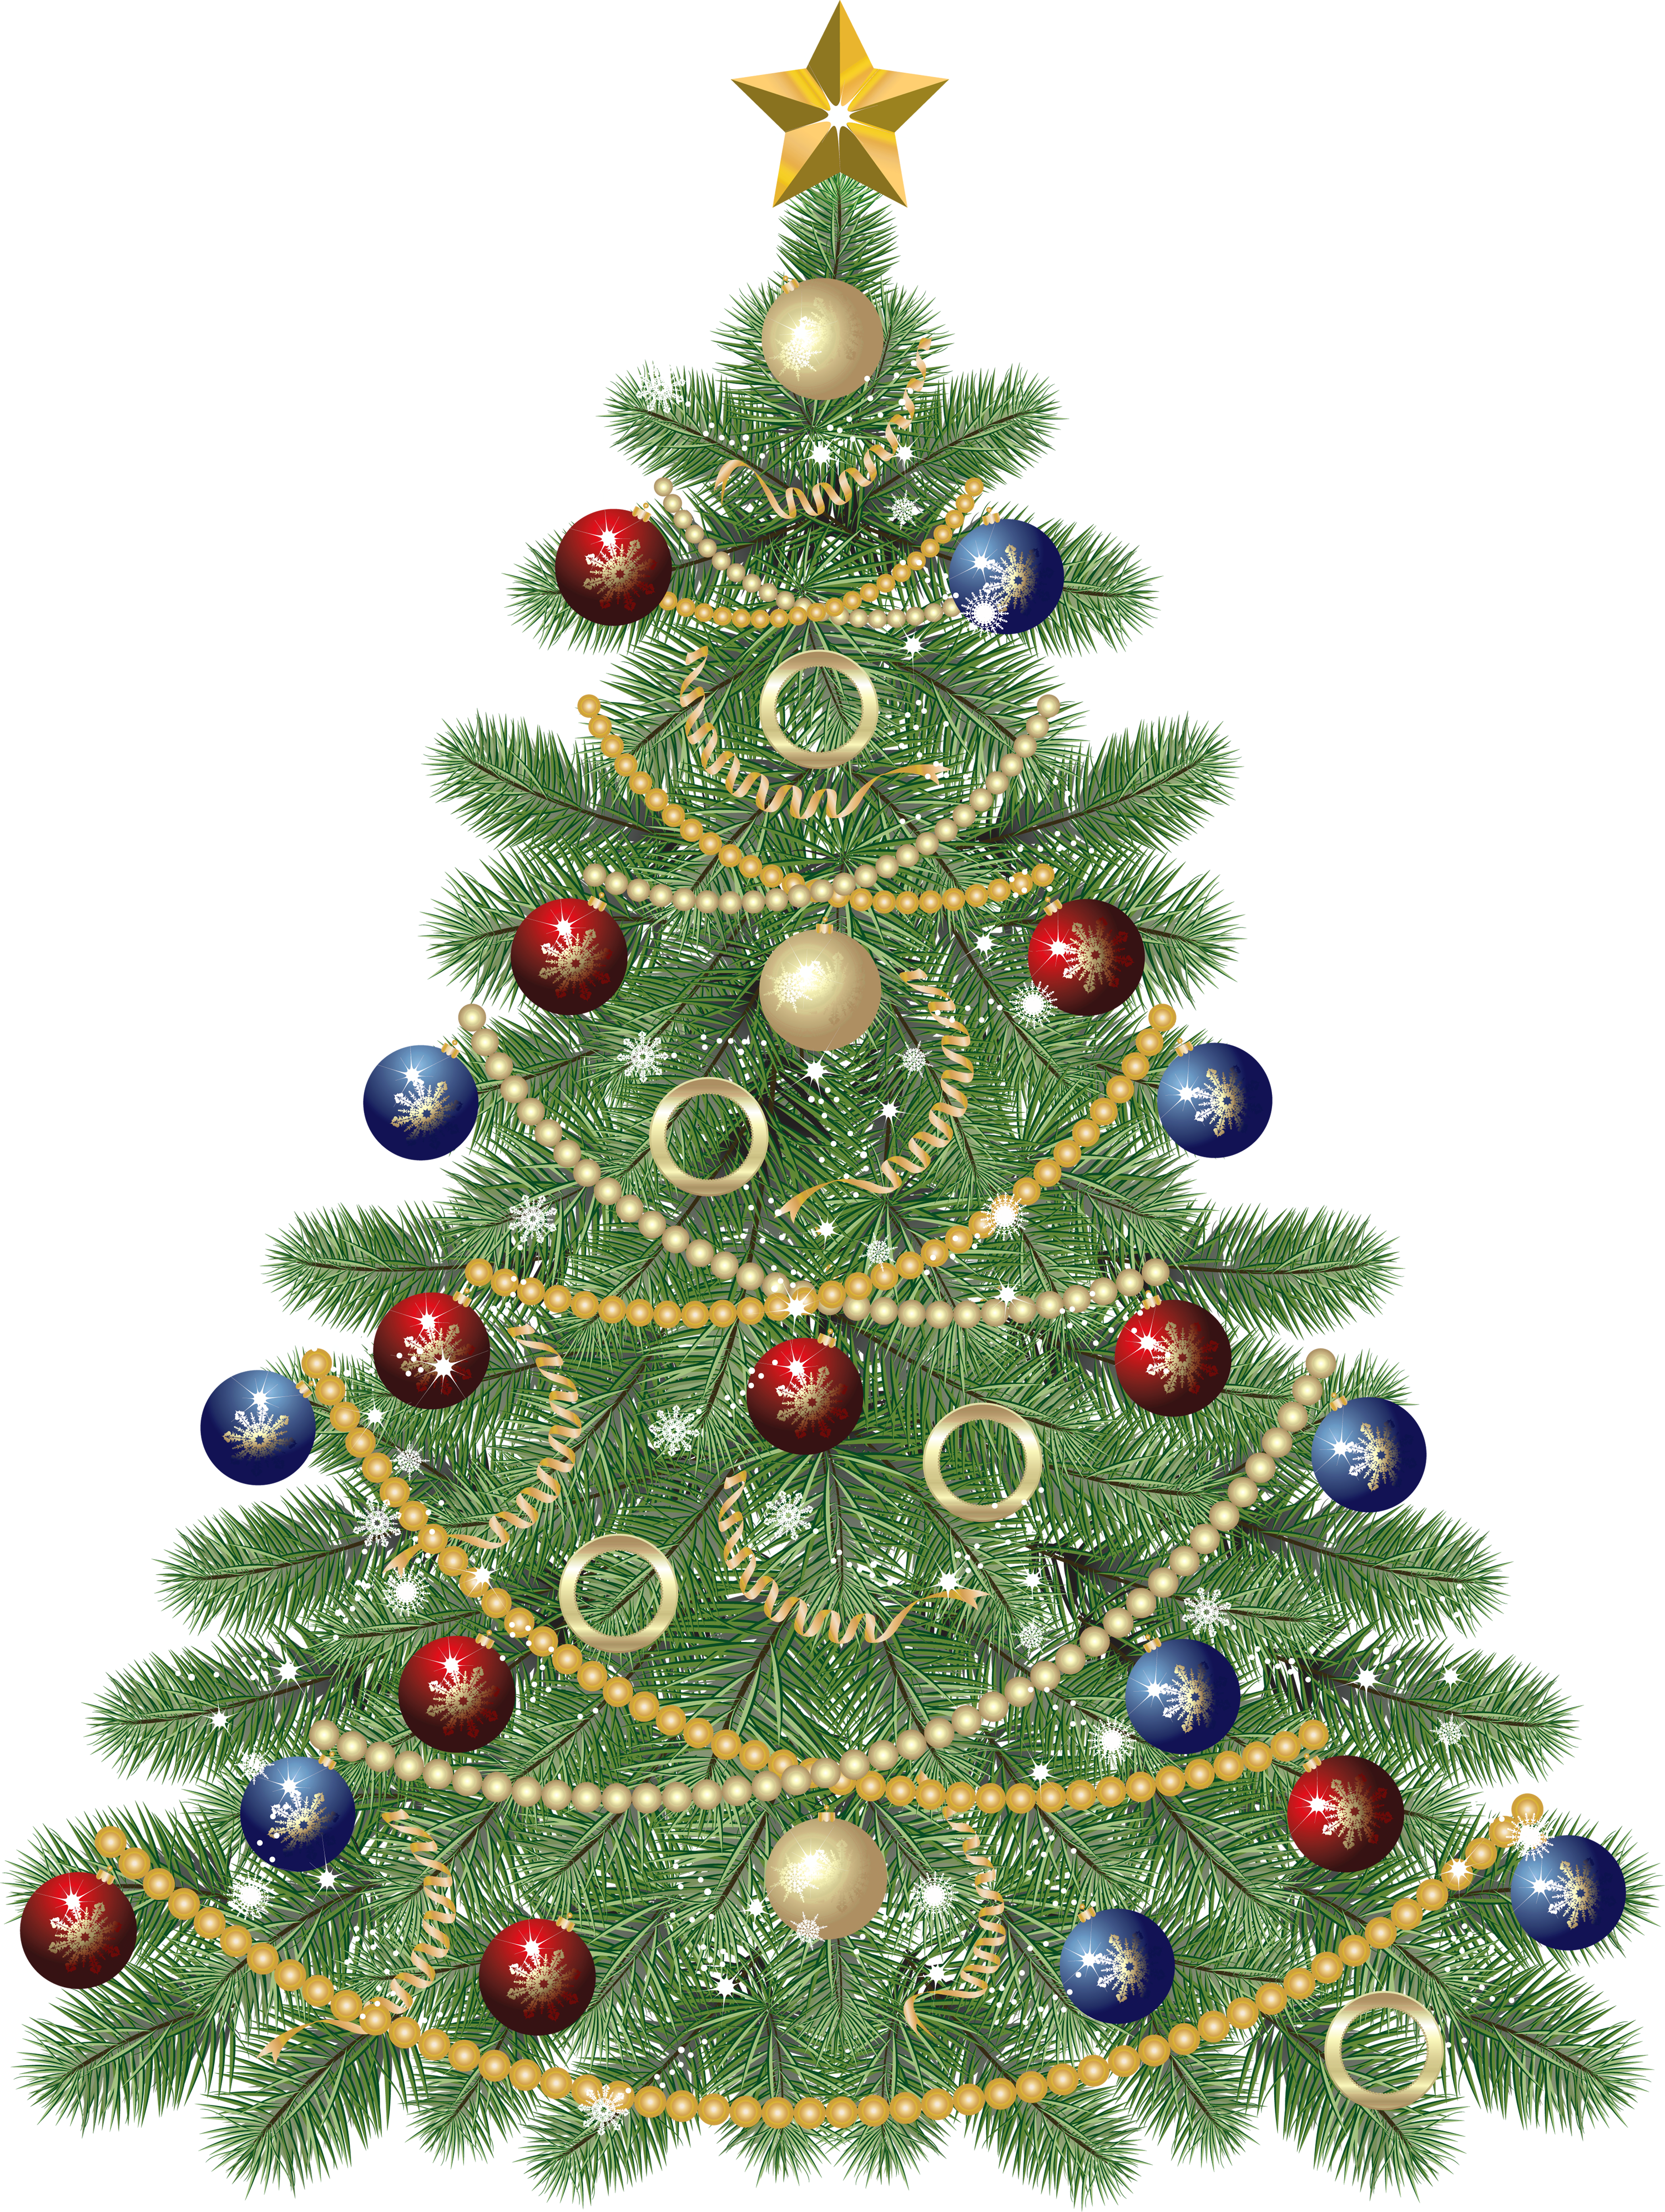 Christmas Tree Clip Art Christmas Tree Clip Art Share Christmas